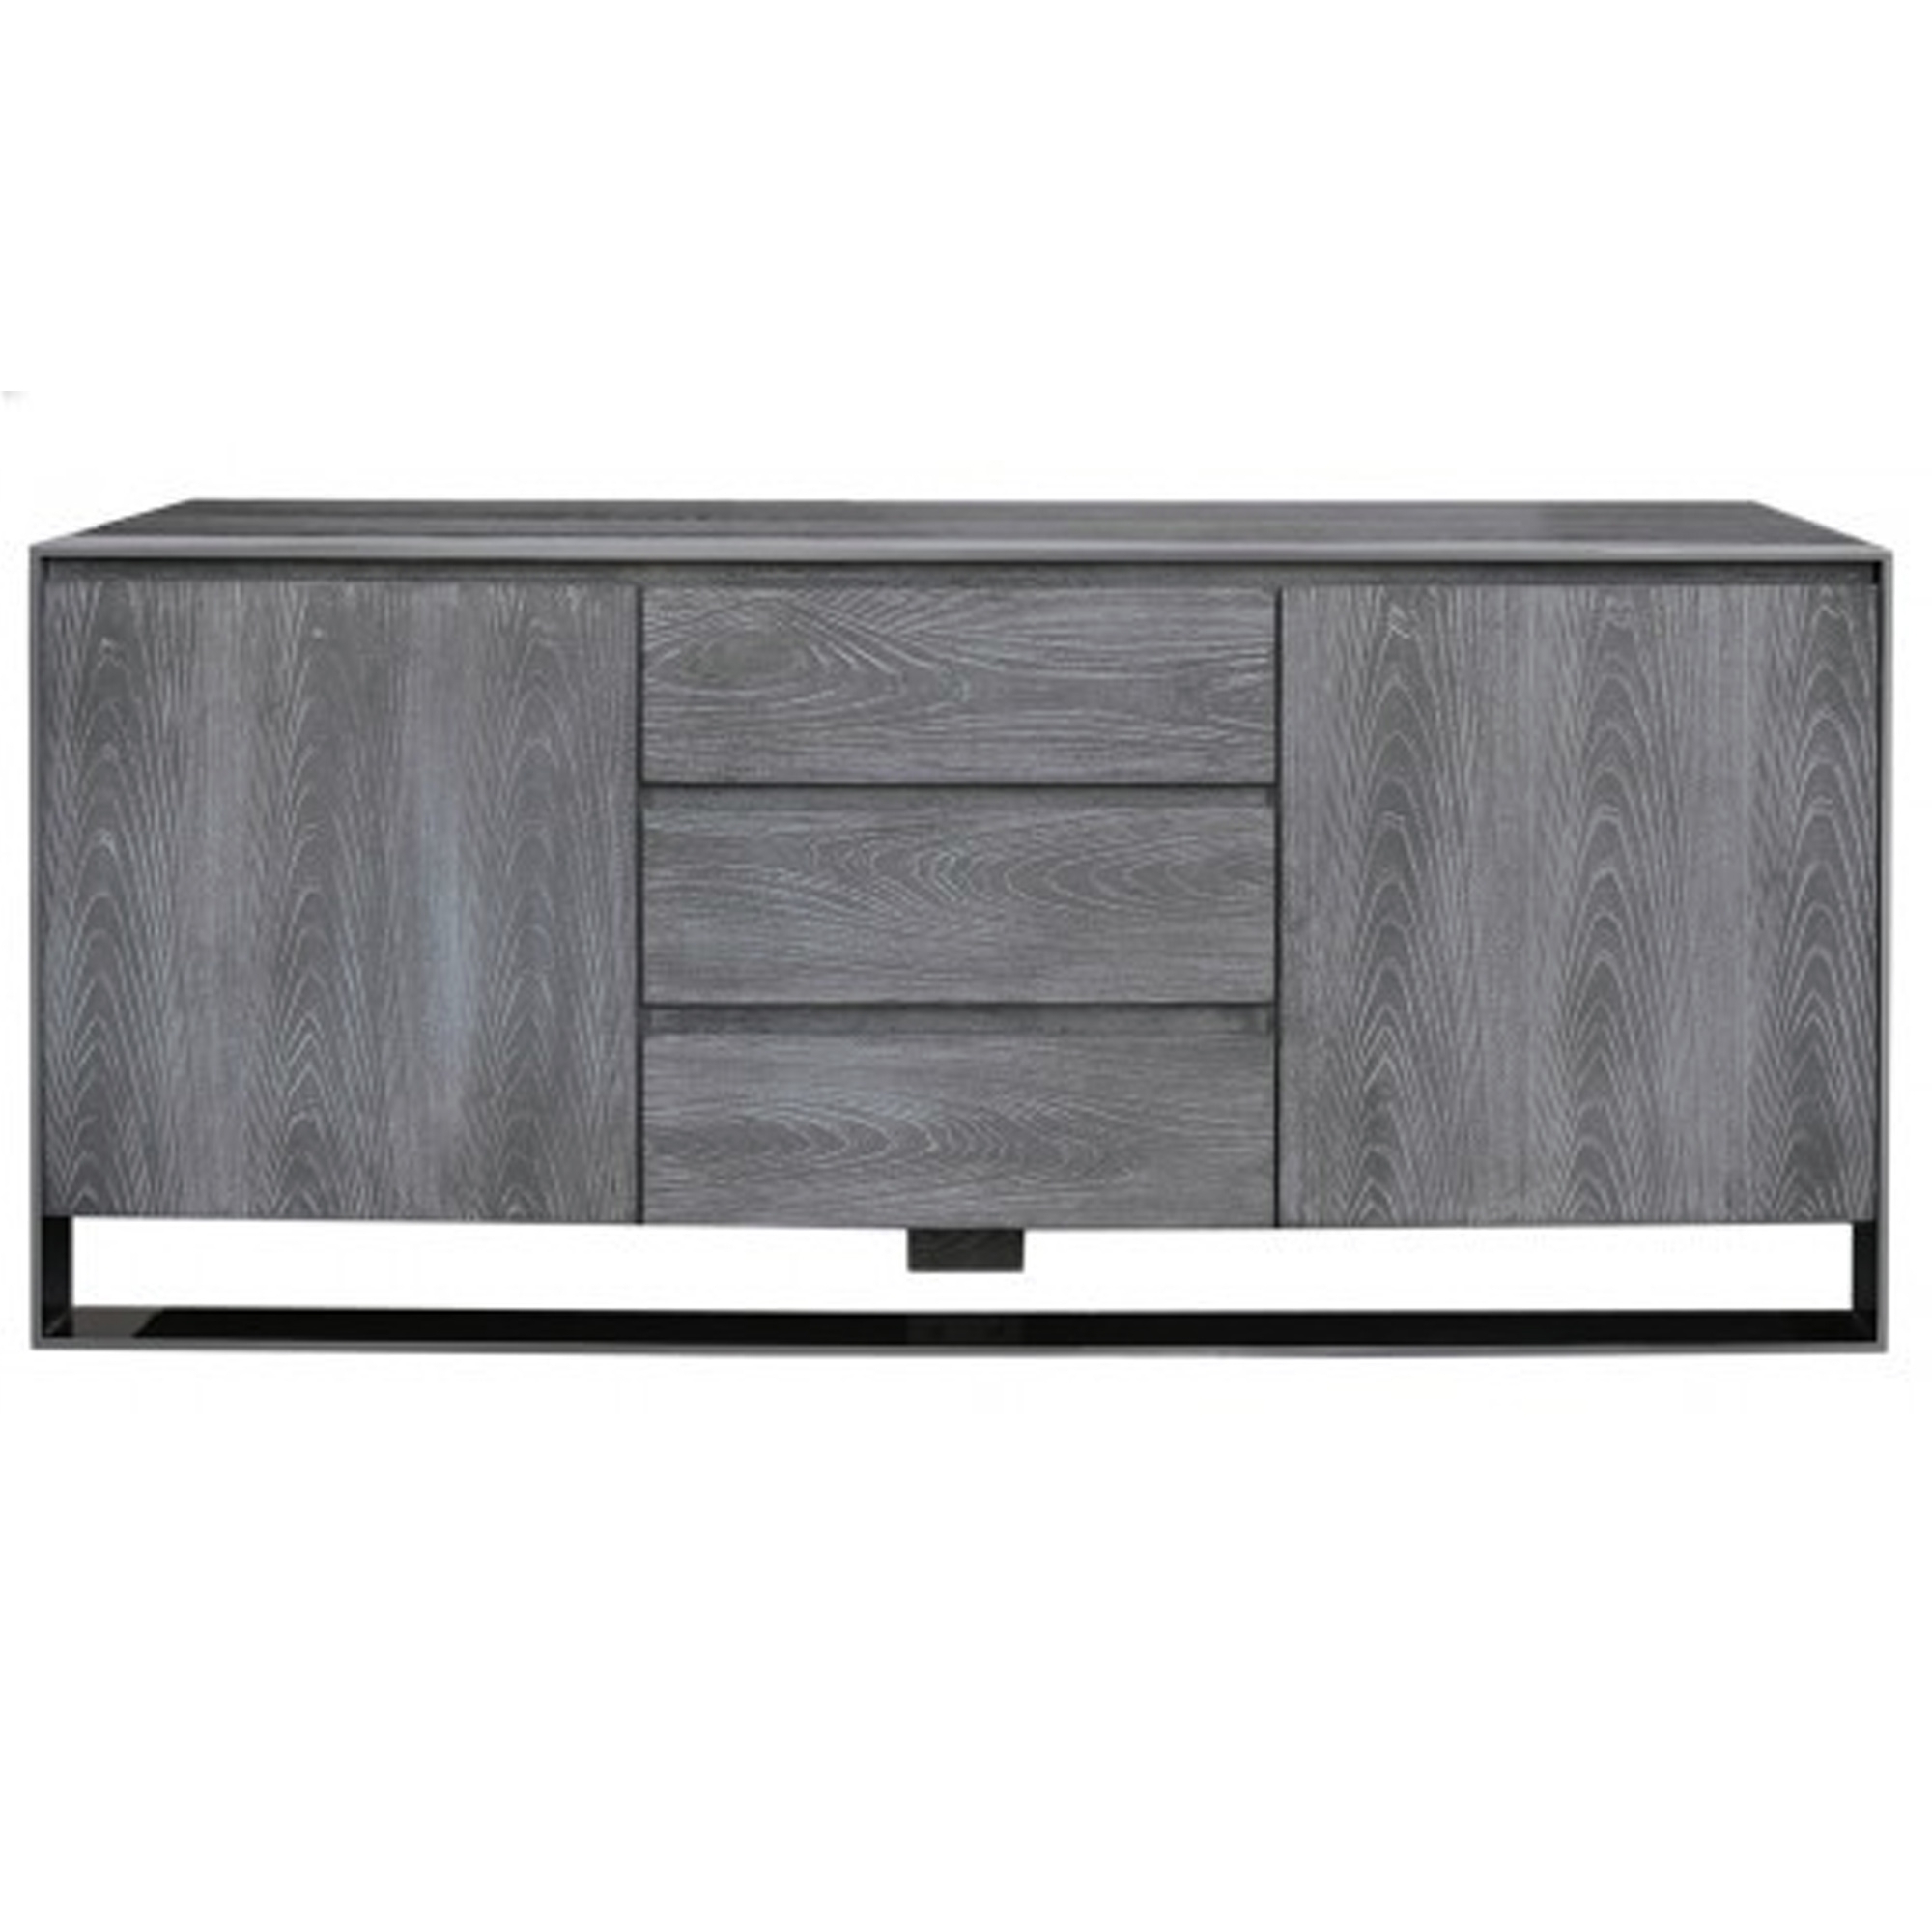 Grey Wooden Sideboard Intended For White And Grey Sideboards (Gallery 2 of 20)